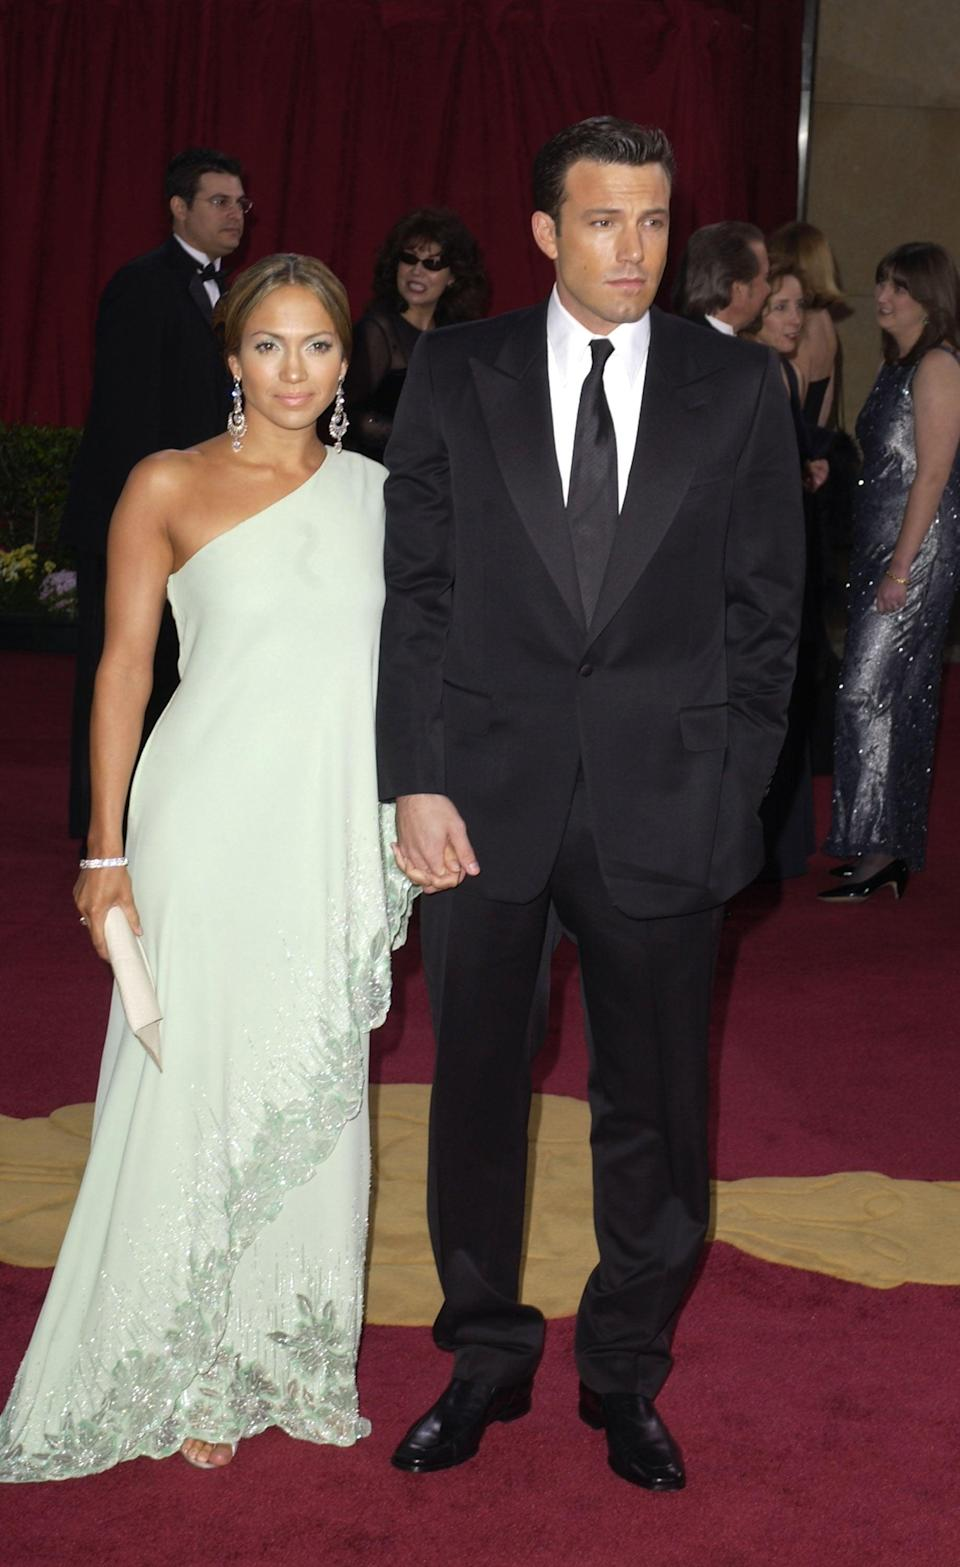 <p>For the 2003 Oscars, Jennifer slipped into a now-iconic one-shouldered Valentino gown with chandelier earrings and Ben wore a classic black tux. </p>